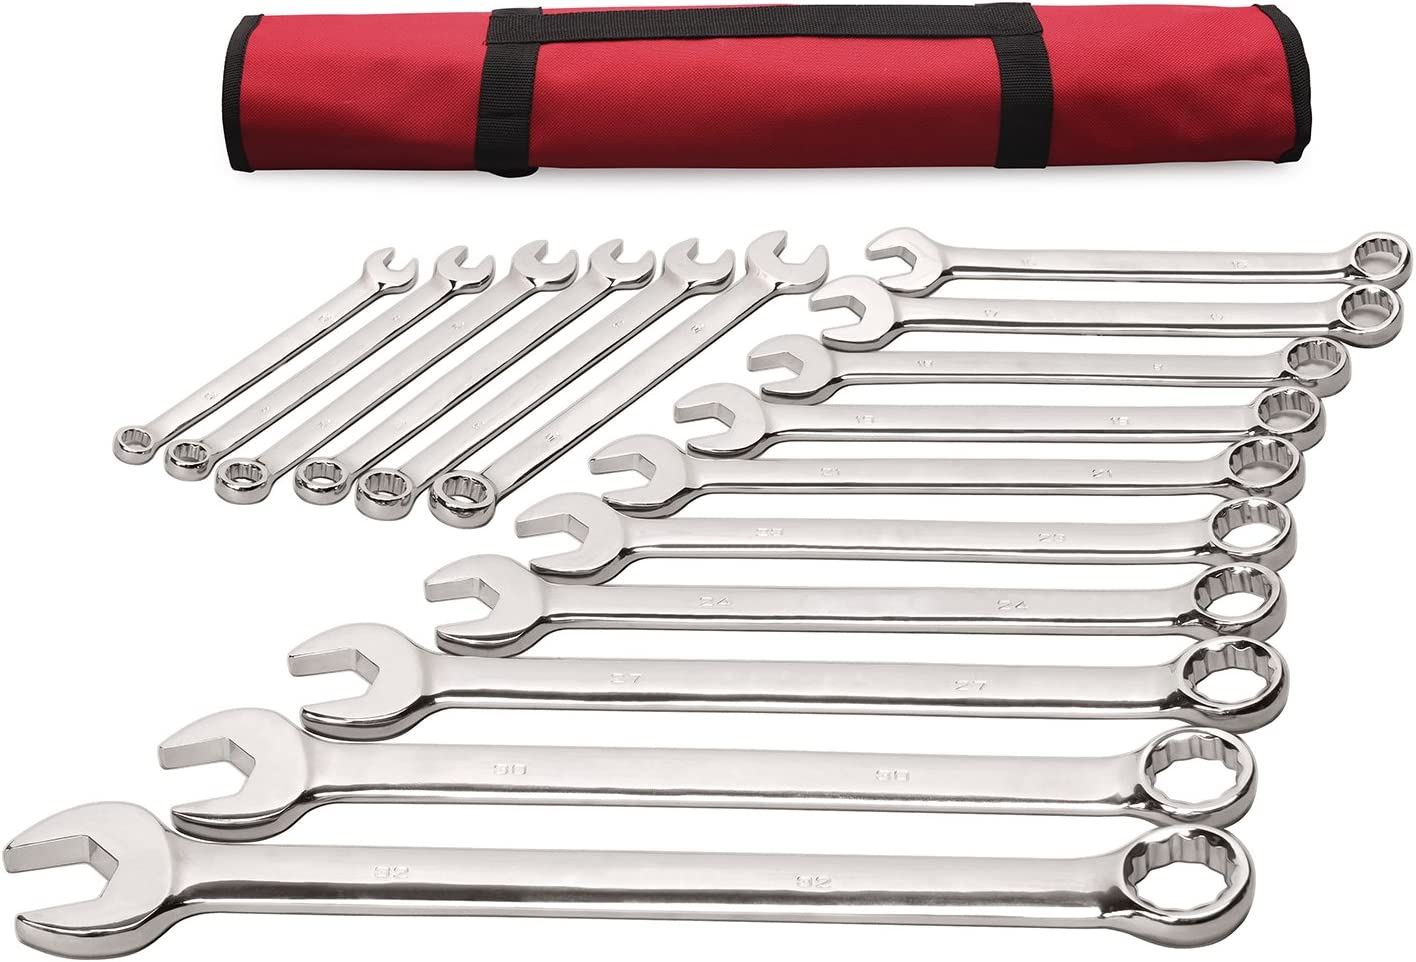 17 30 32mm in Roll-up Pouch 14 18 15 Sizes 10 13 Best Choice 16-Piece Large Metric Combination Wrench Set 21 23 Long Pattern 11 V-Groove Design 12 27 24 16 Chrome Vanadium Steel 19